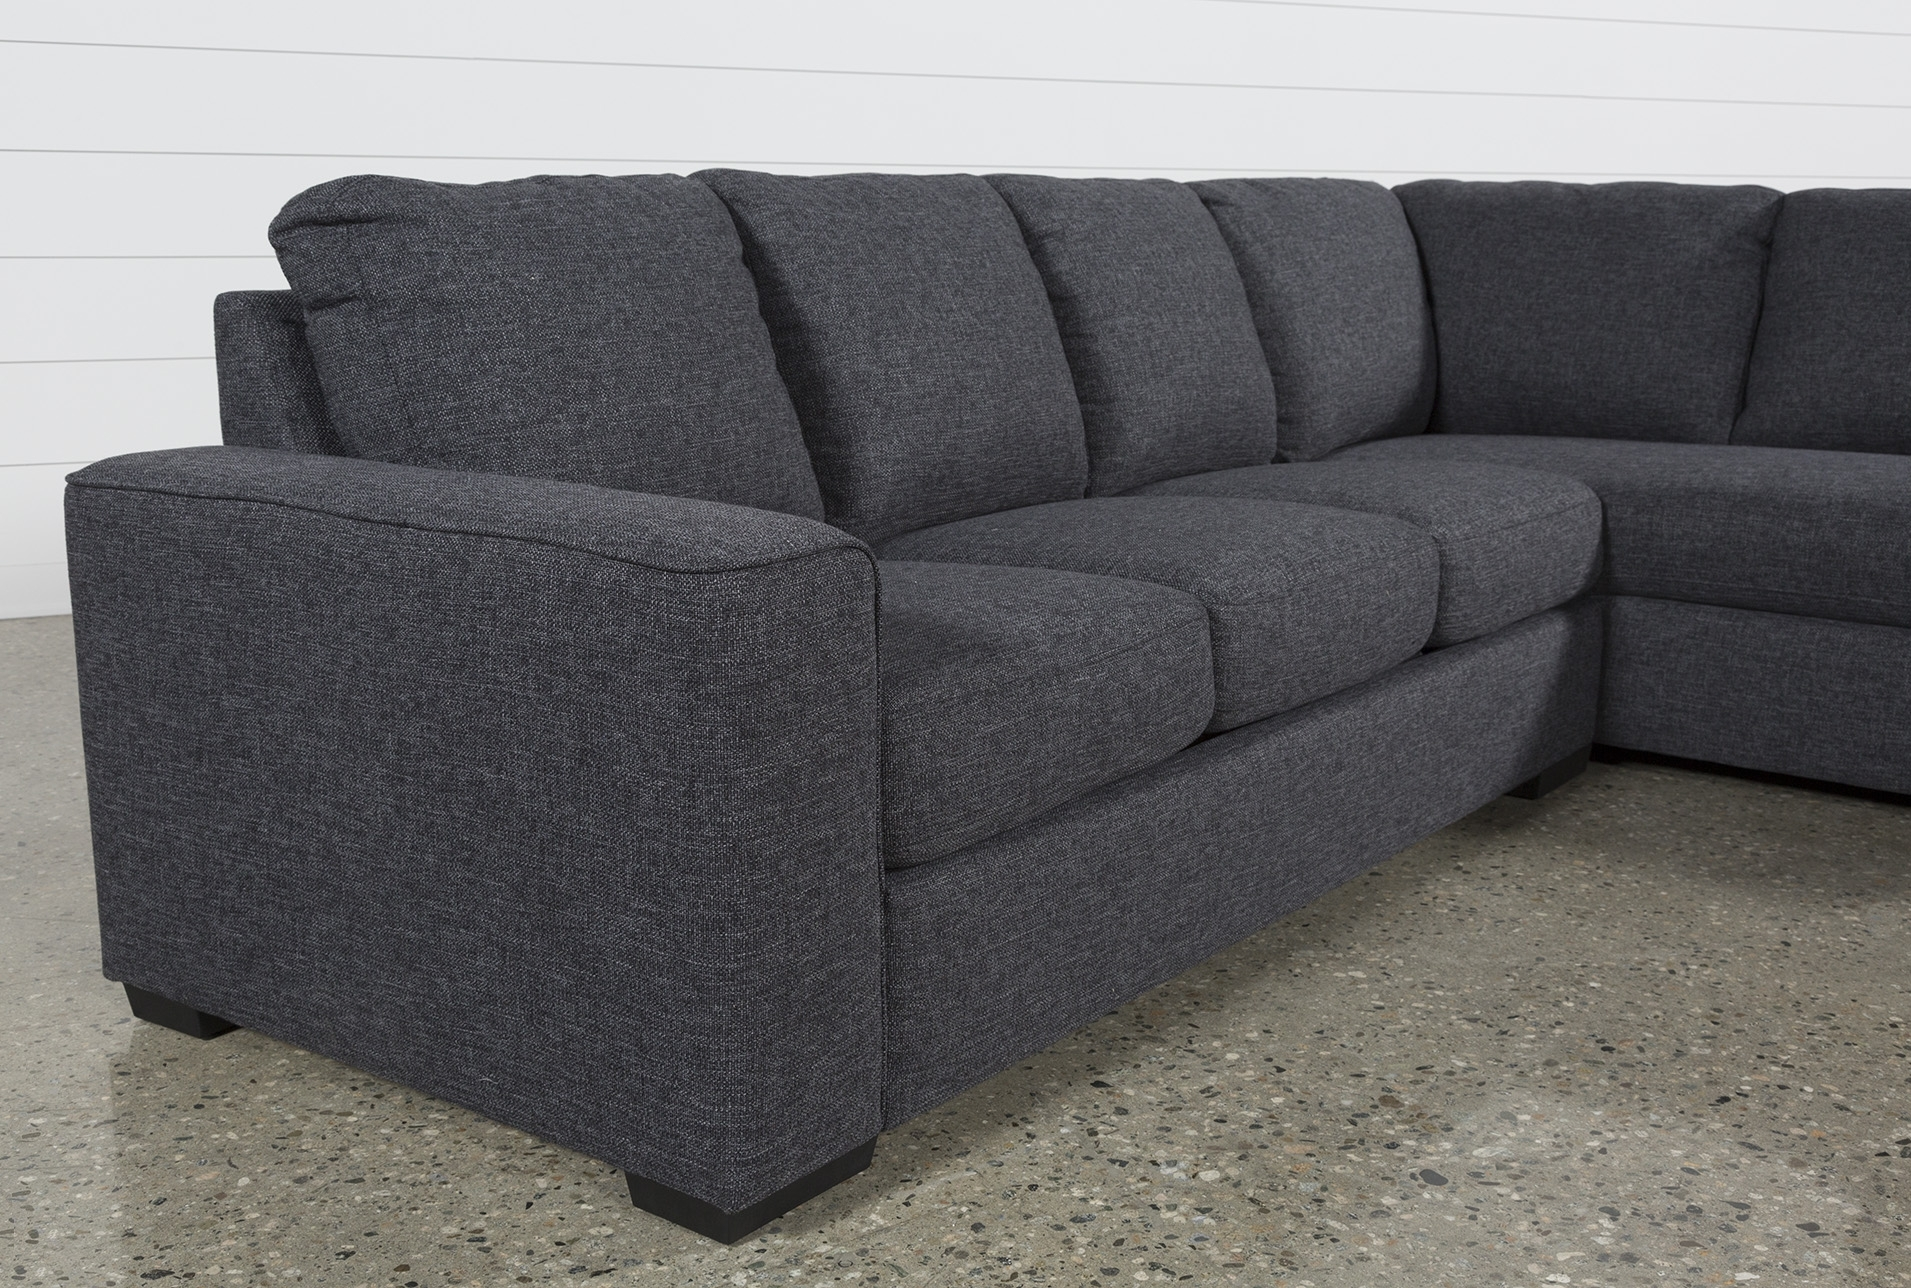 Lucy Dark Grey 2 Piece Sectional W/raf Chaise | Pinterest | Dark pertaining to Lucy Dark Grey 2 Piece Sectionals With Laf Chaise (Image 19 of 30)